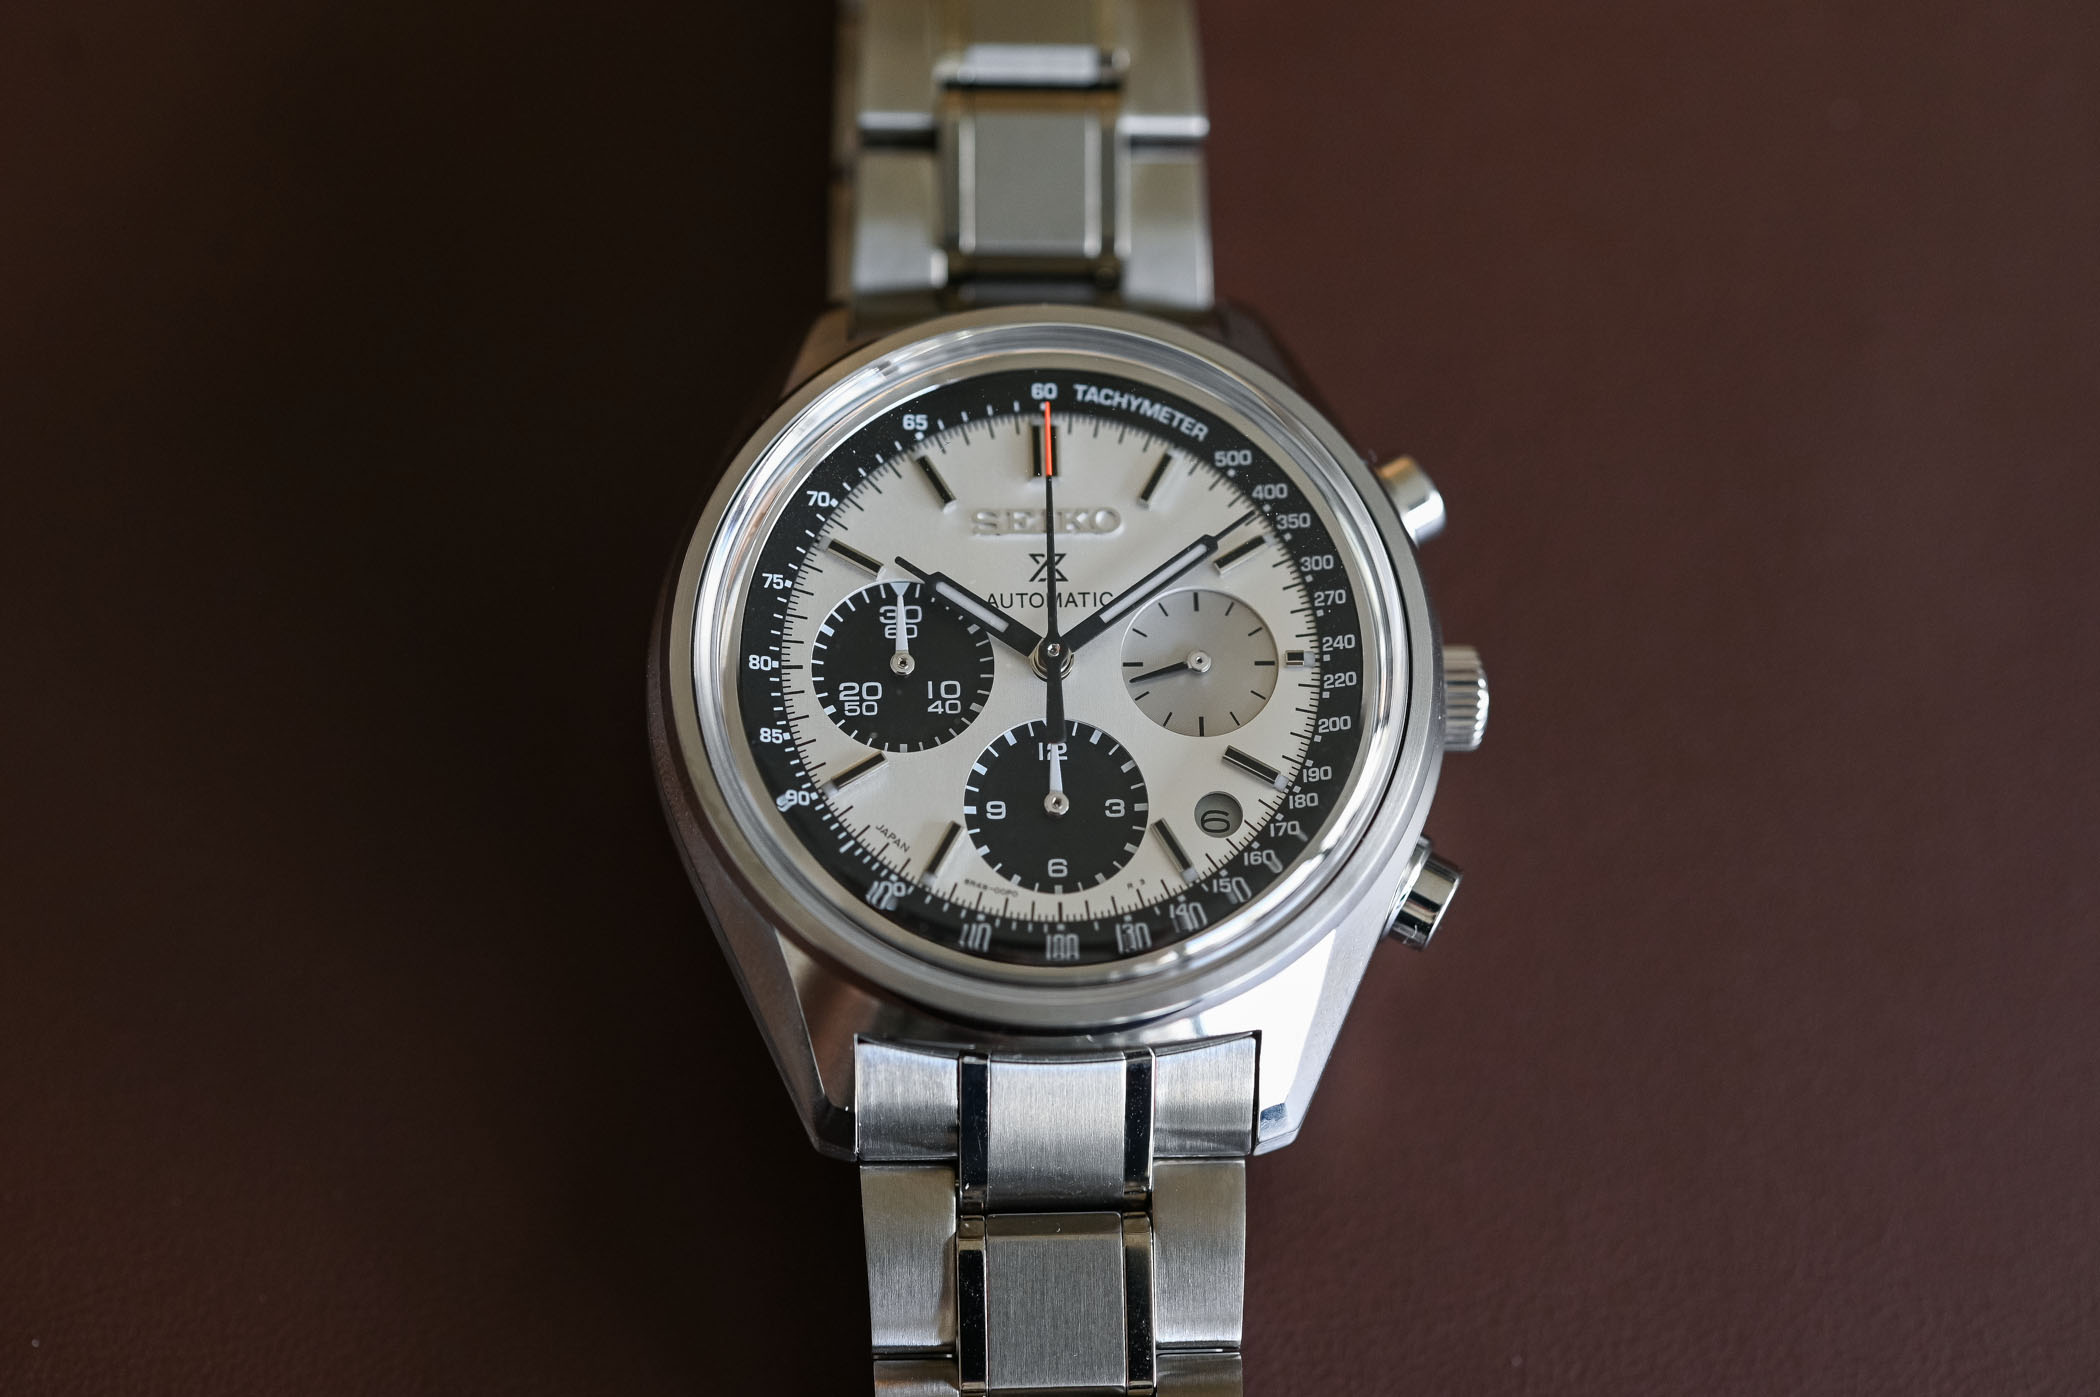 Seiko Prospex Automatic Chronograph 50th Anniversary Limited Edition SRQ029